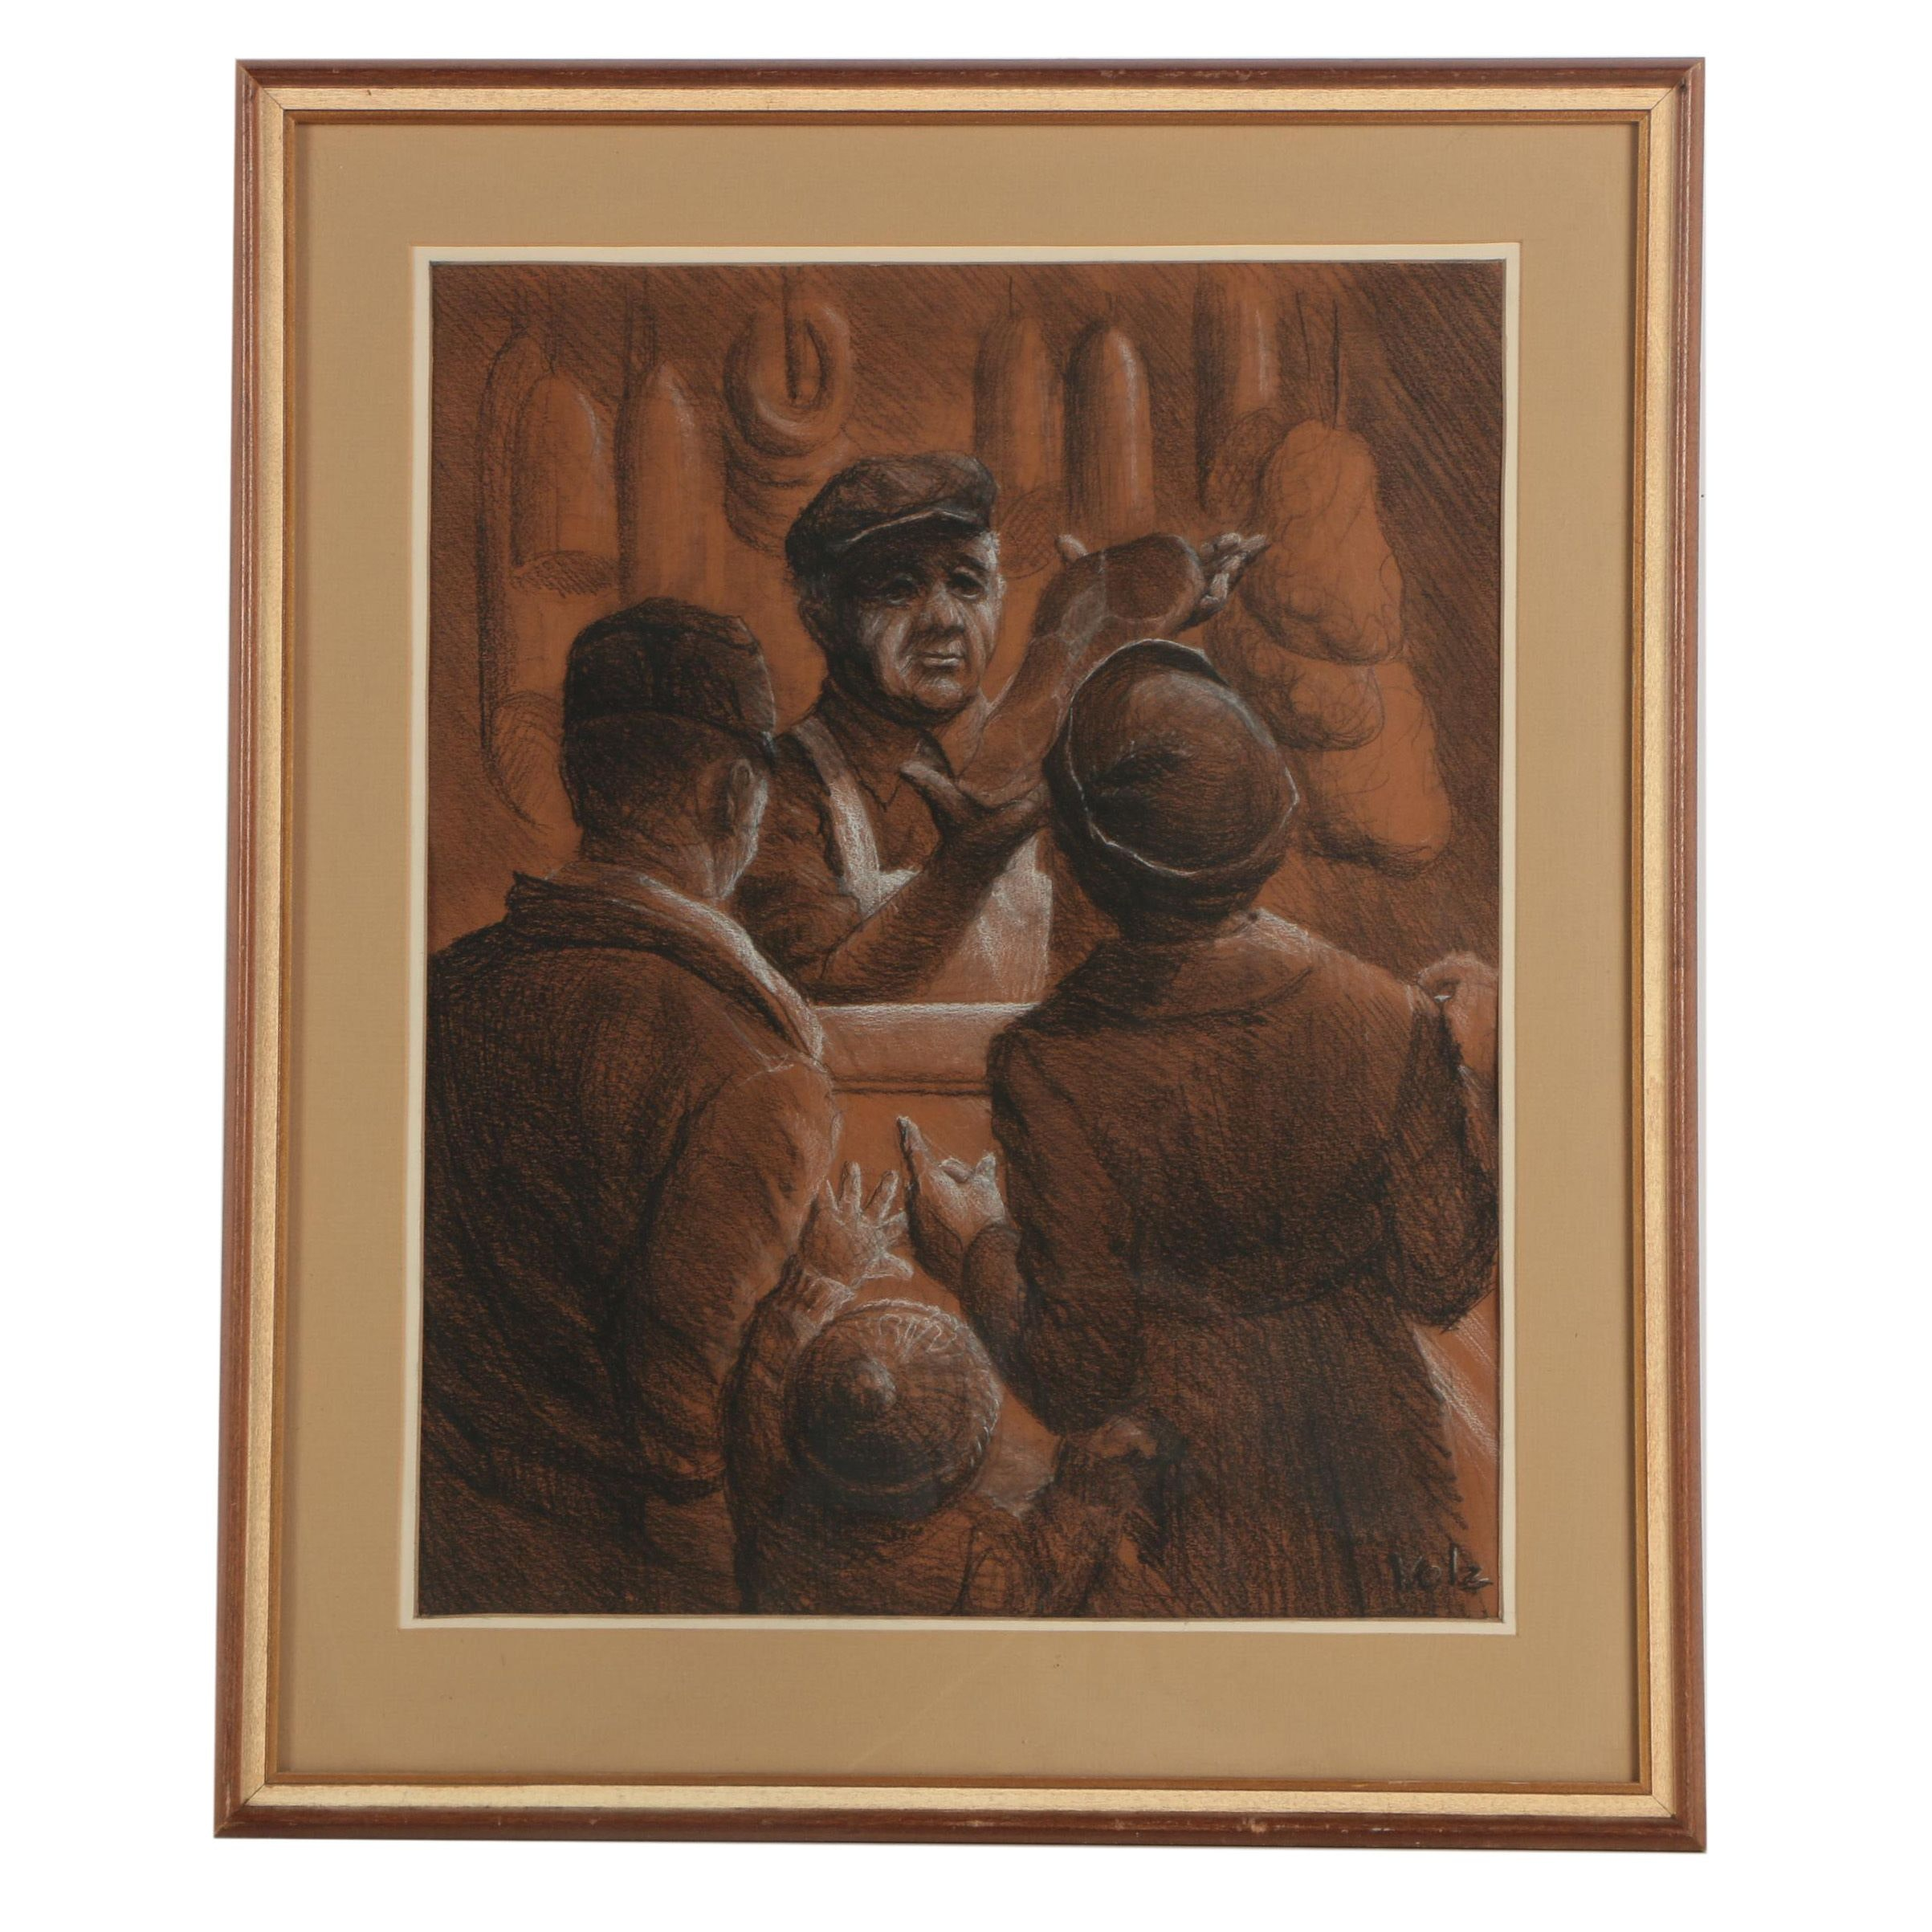 Herman Volz Signed Charcoal Drawing of Family at the Butcher